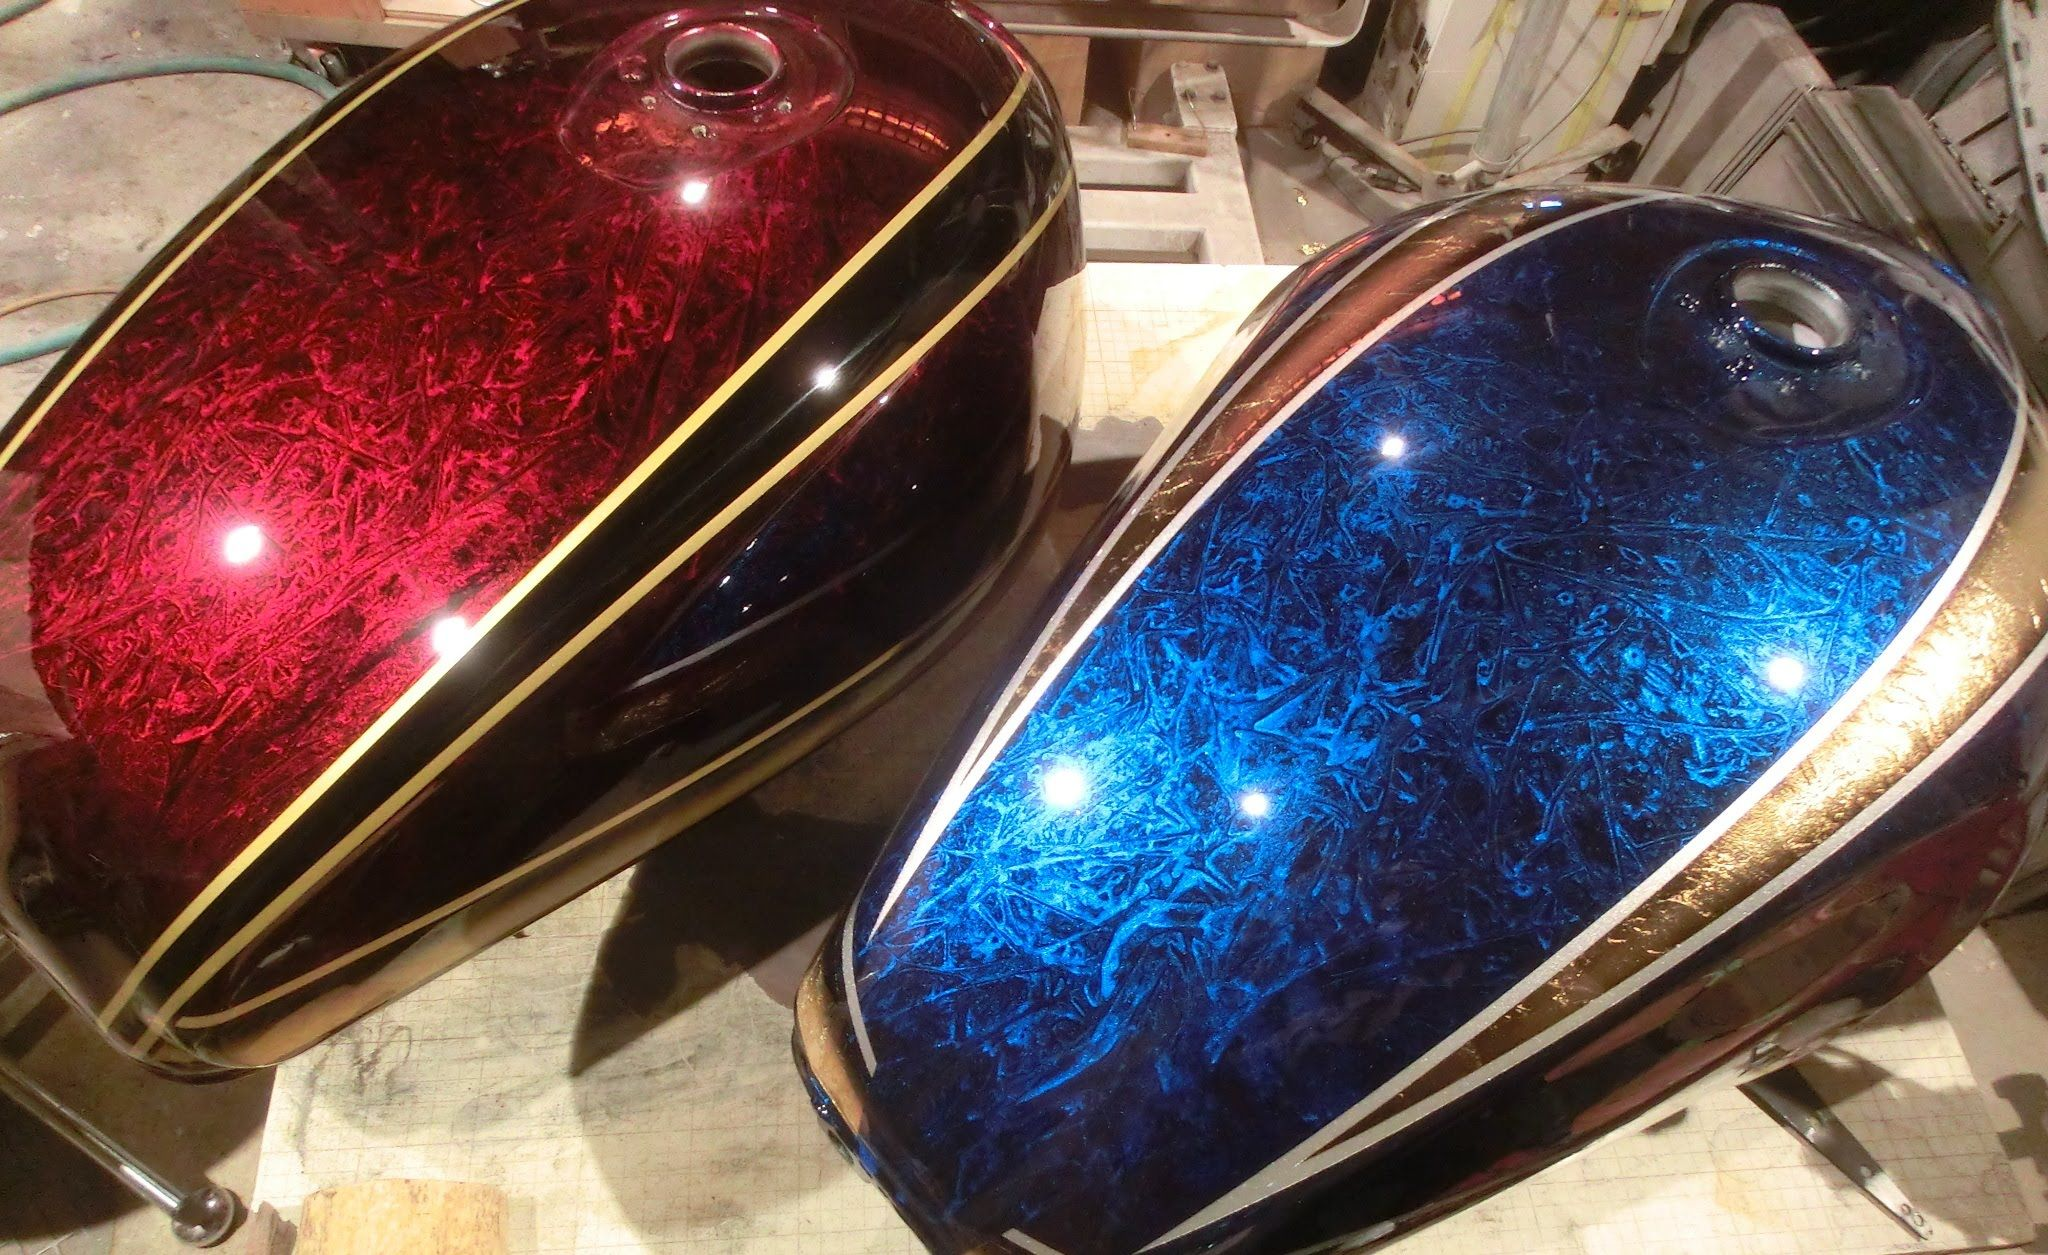 Custom Paint Shops Near Me >> Motorcycle tank paint job. Making trick paint with silver and plastic foil coated with candy and ...